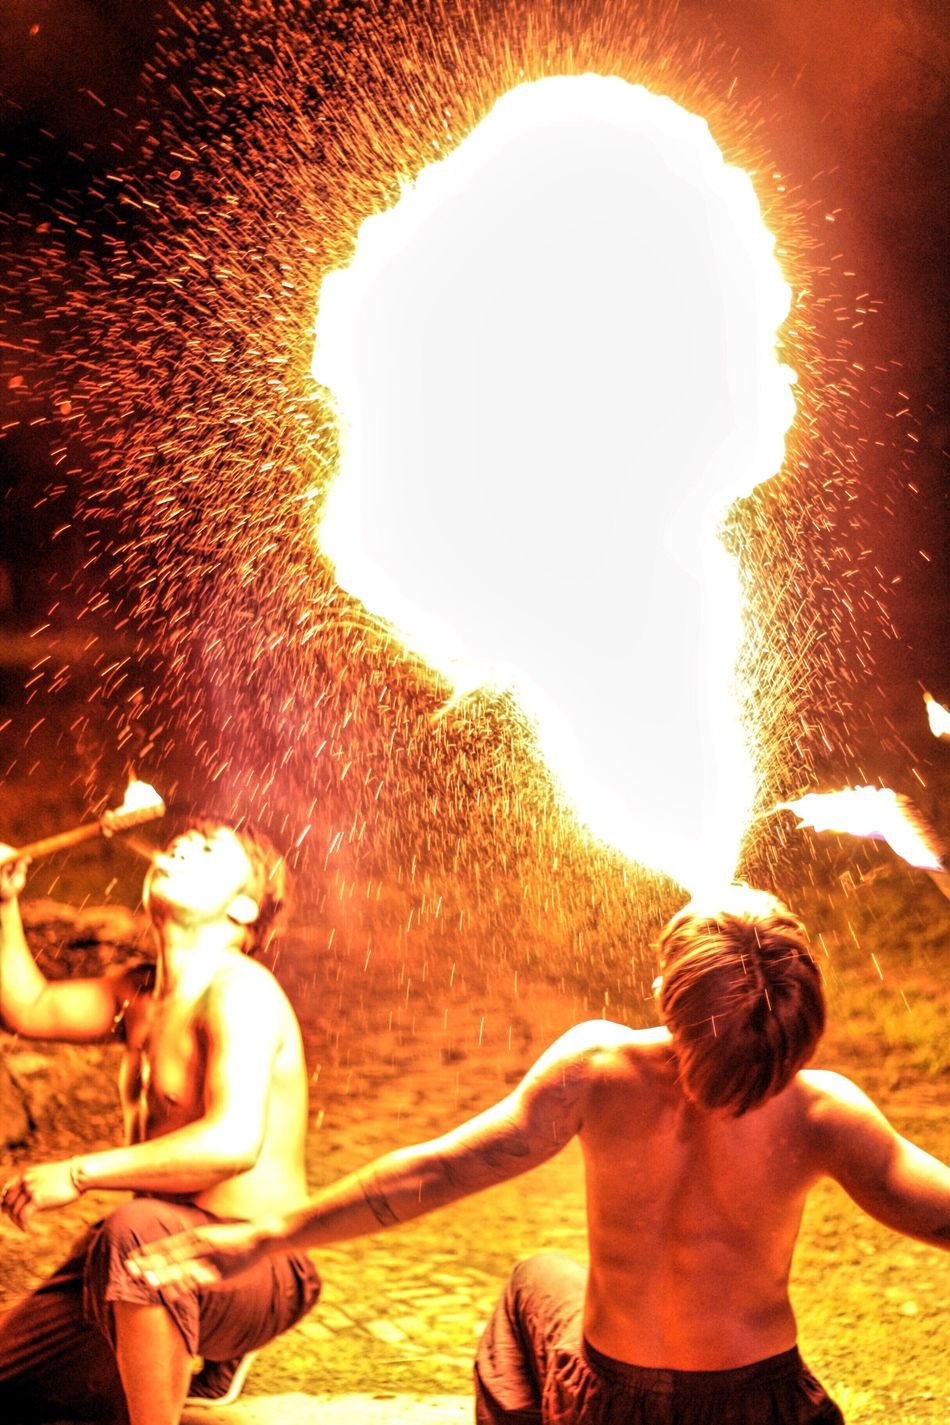 The Awesome Show Check This Out Campfire Party Hit The Paradise Eruption Planting